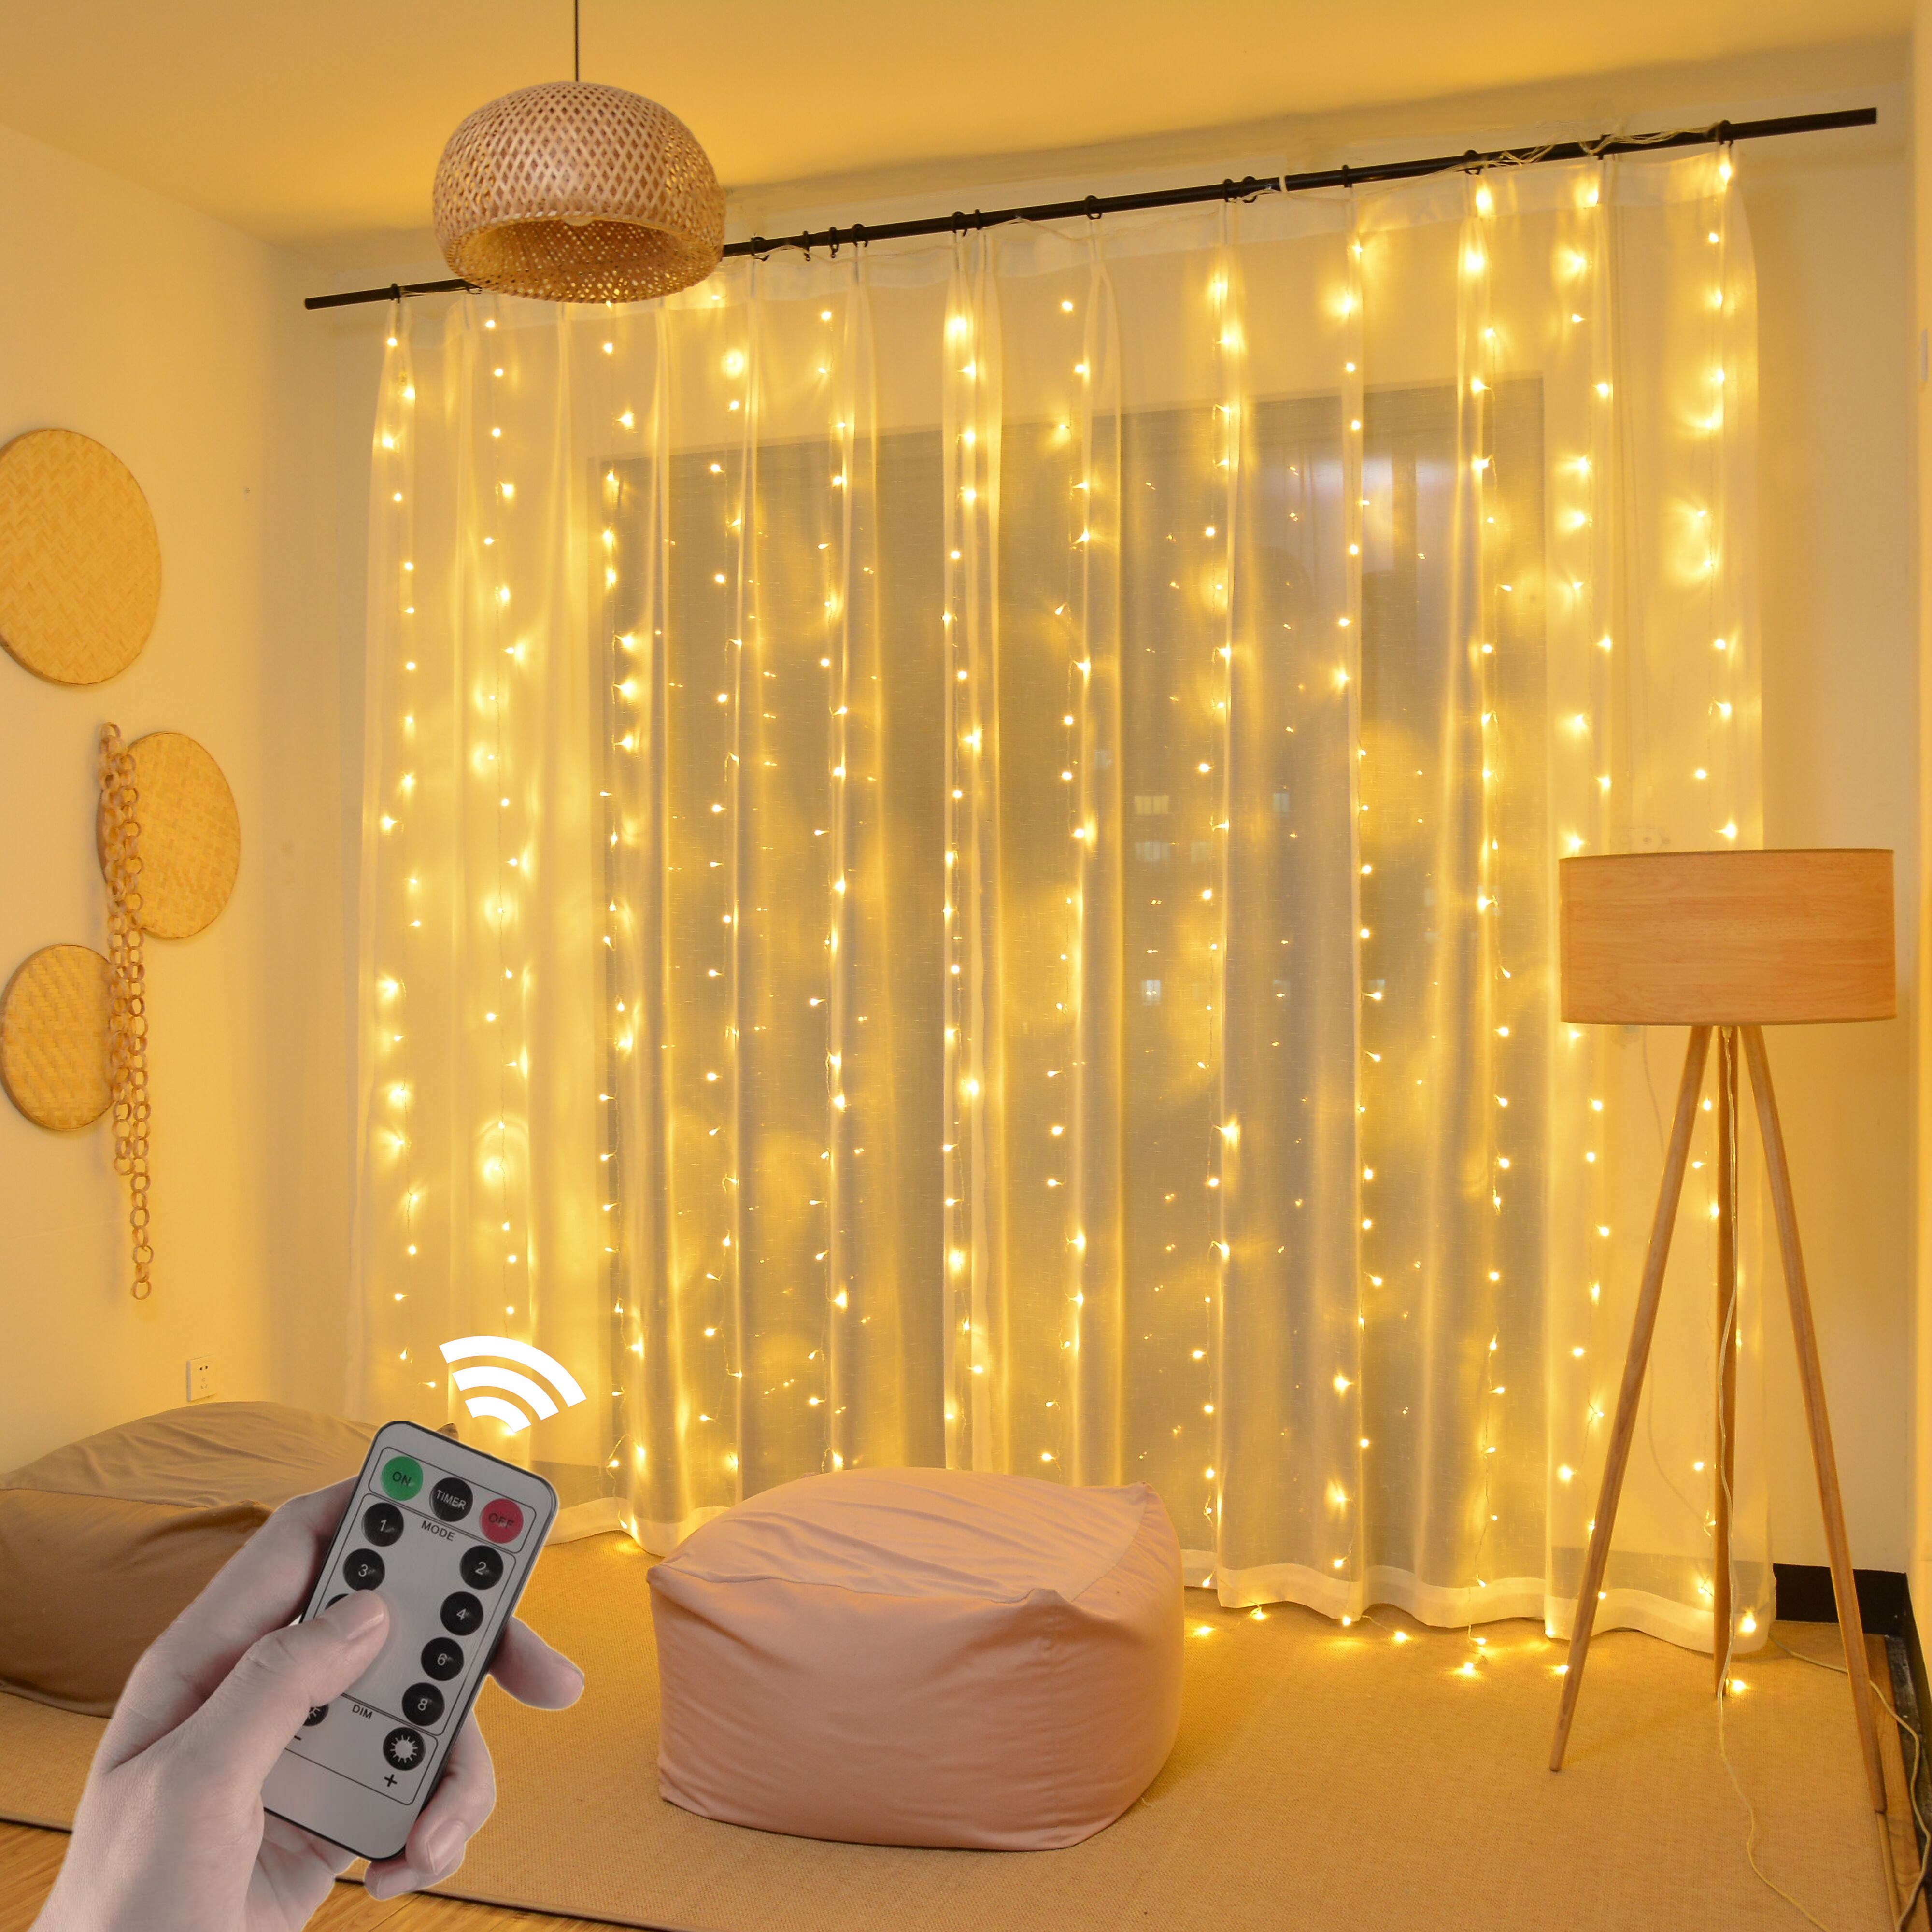 3m 2m LED Curtain USB String Lights Remote Control Fairy Garland on the Window New Year Christmas Decorations for Home Outdoor